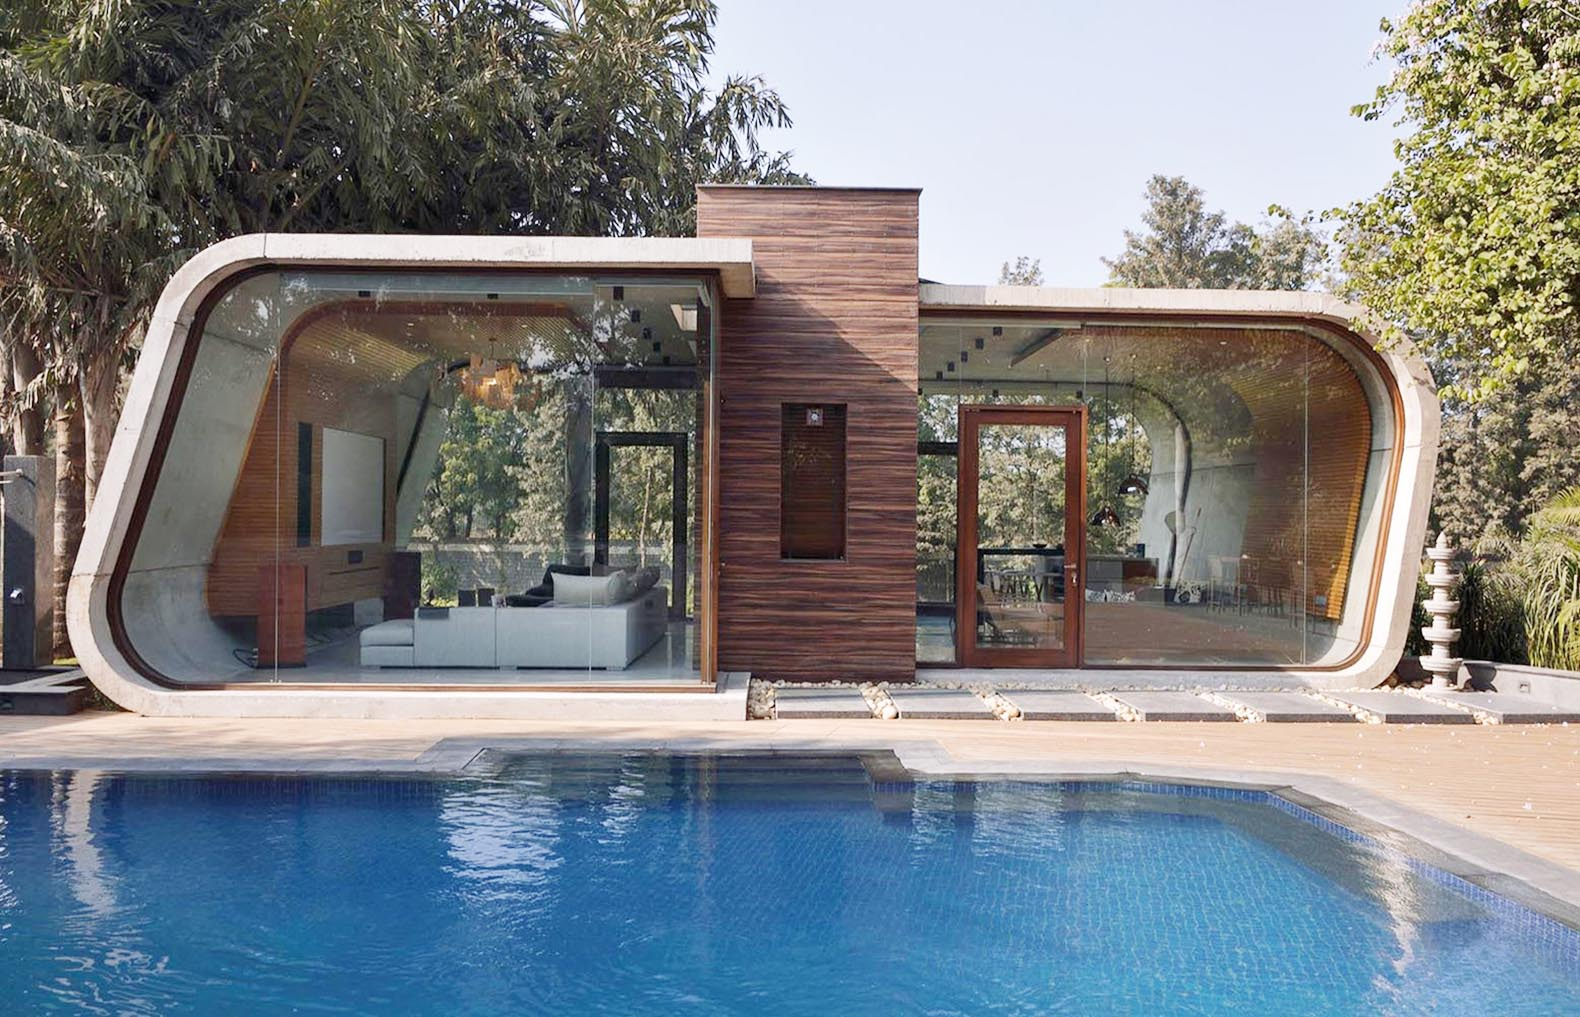 pool house, 42mm architecture, poland, green architecture, swimming pool,  wooden cladding GDVUQWM